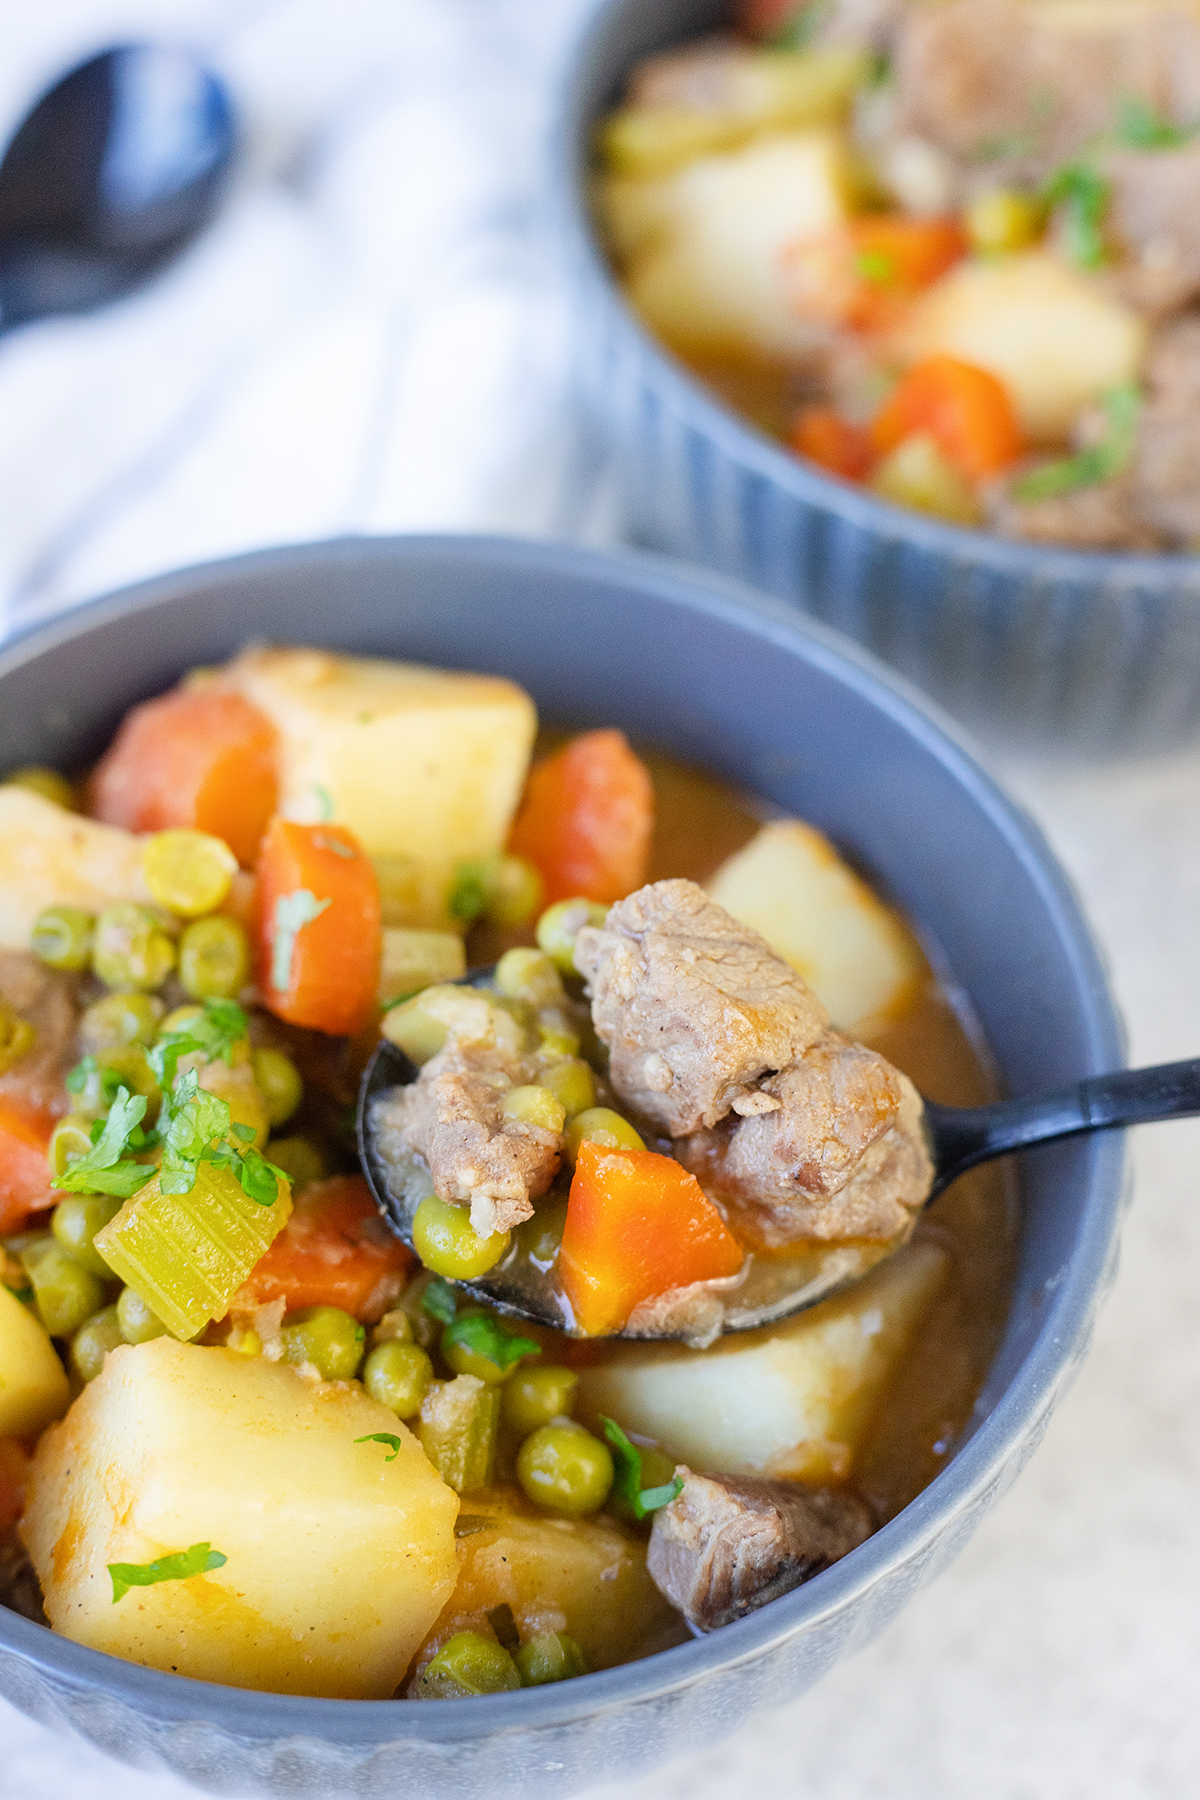 A lot of healthy ingredients in this lamb stew recipe.